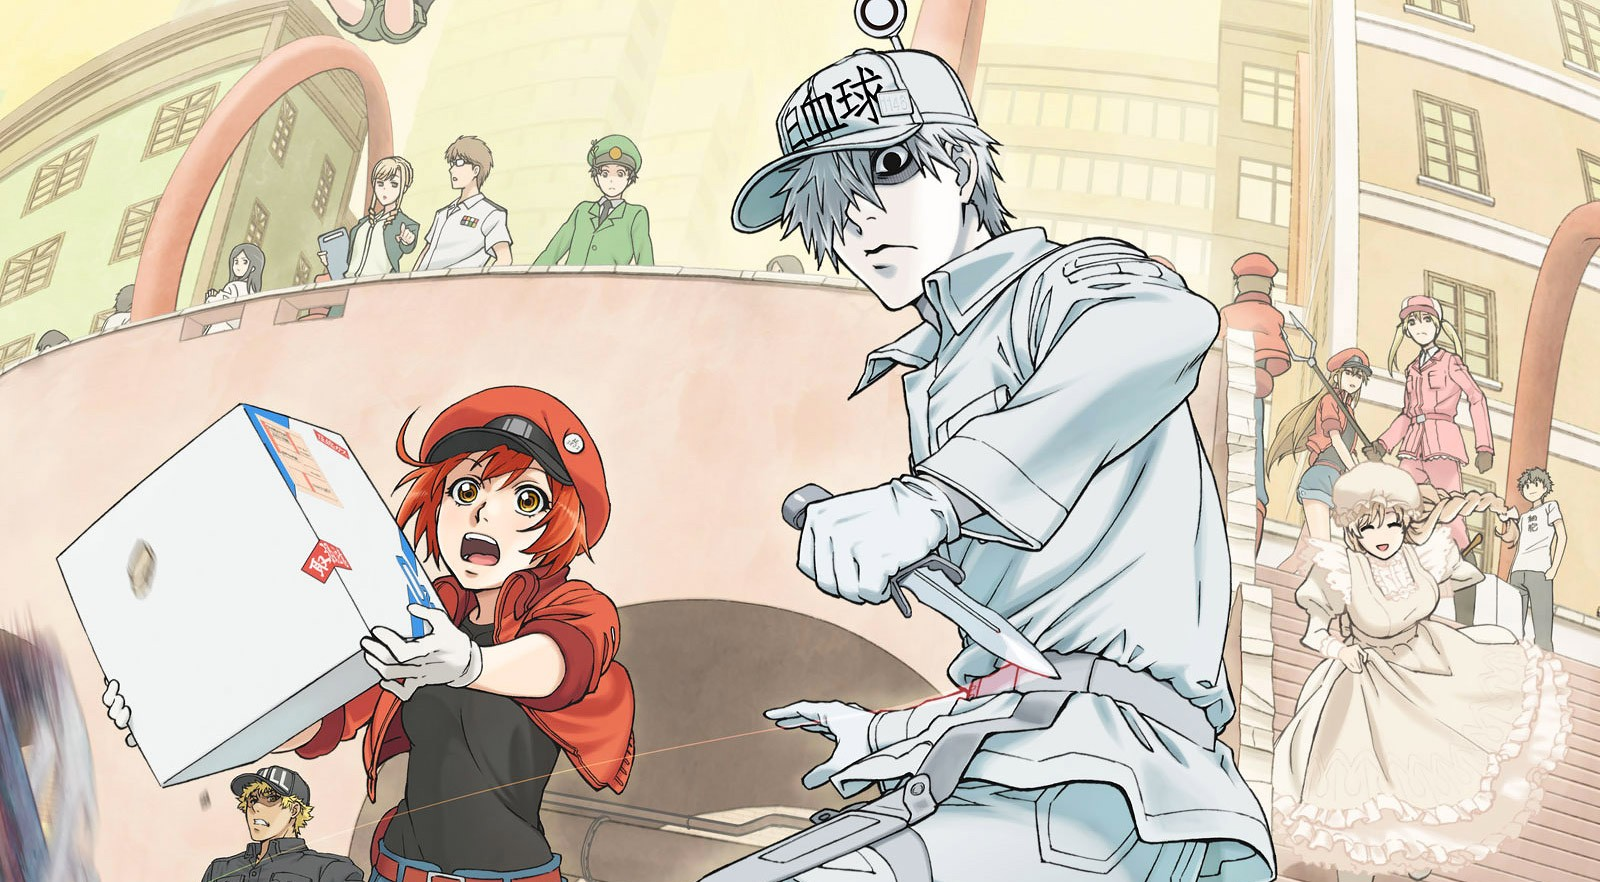 Hataraku Saibou (Cells at Work / Lavori in Corpo)